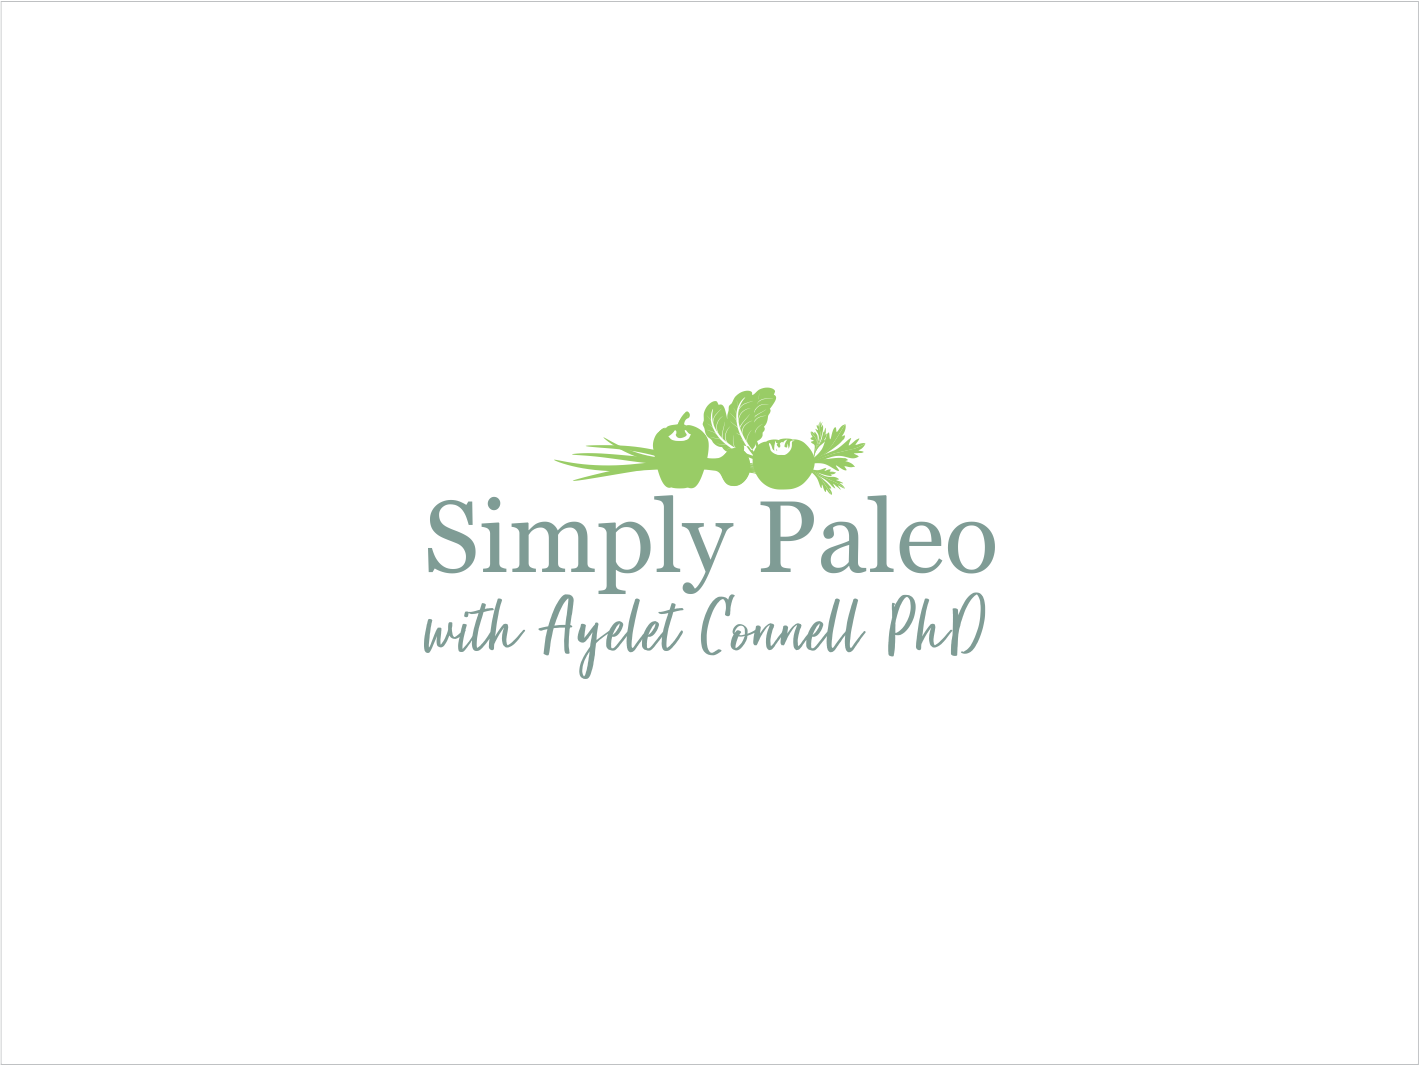 Logo Design job  Logo brief for Ayelet Connell, a company in